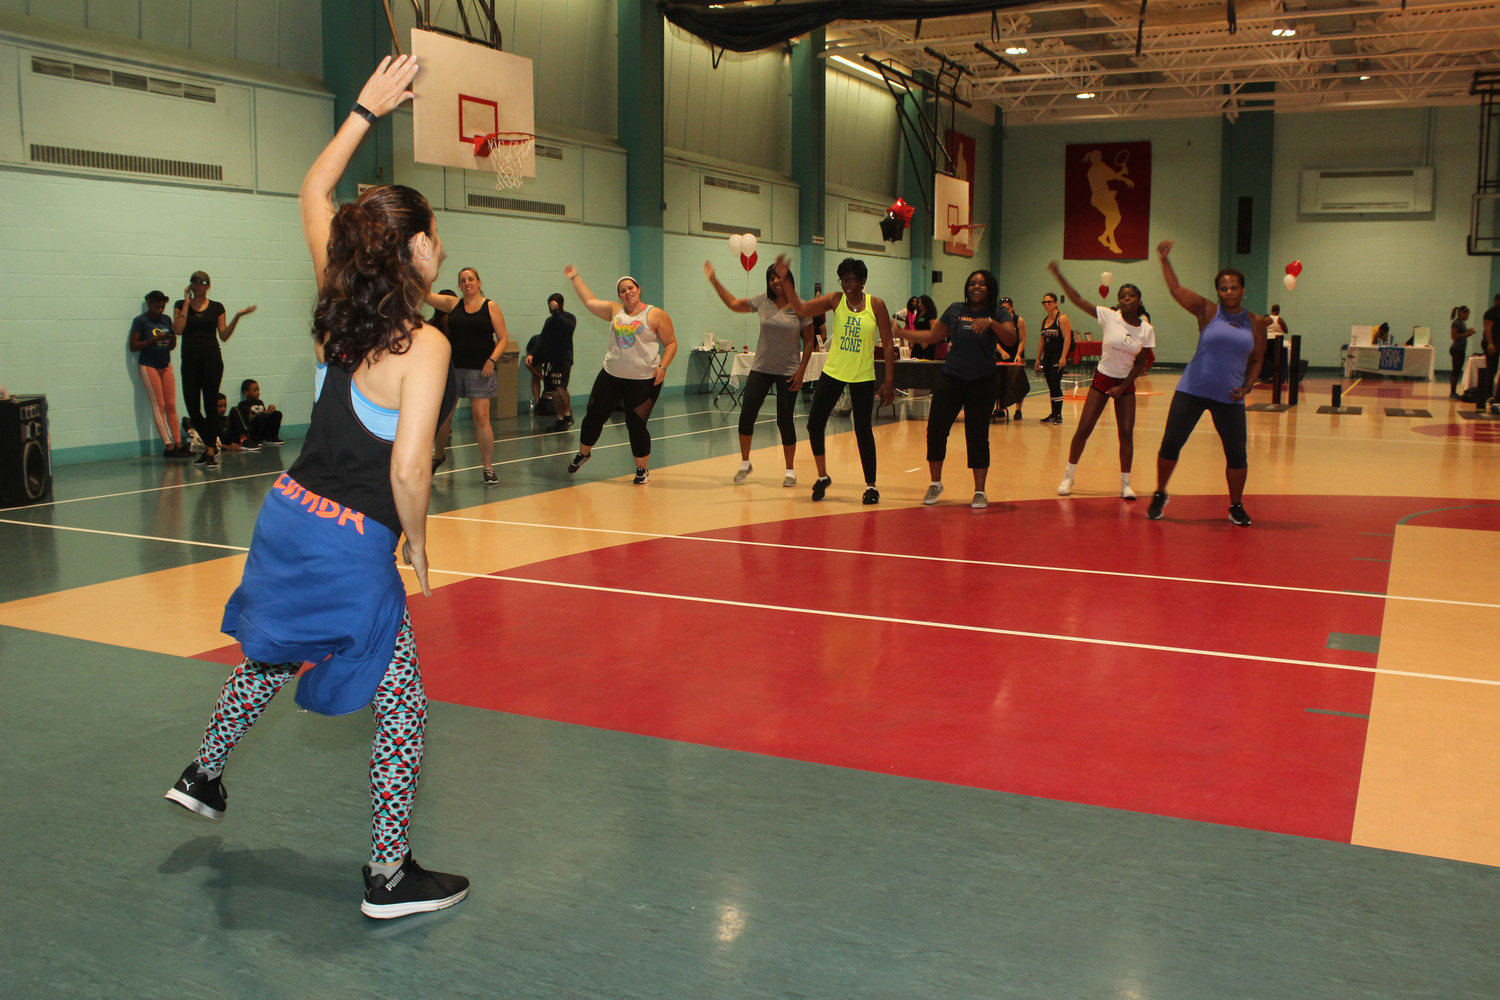 Freeport Recreation Center instructor, Hayat Pineiro, left, led an energetic half hour Zumba class to attendees of the Keep Fit Fun event.